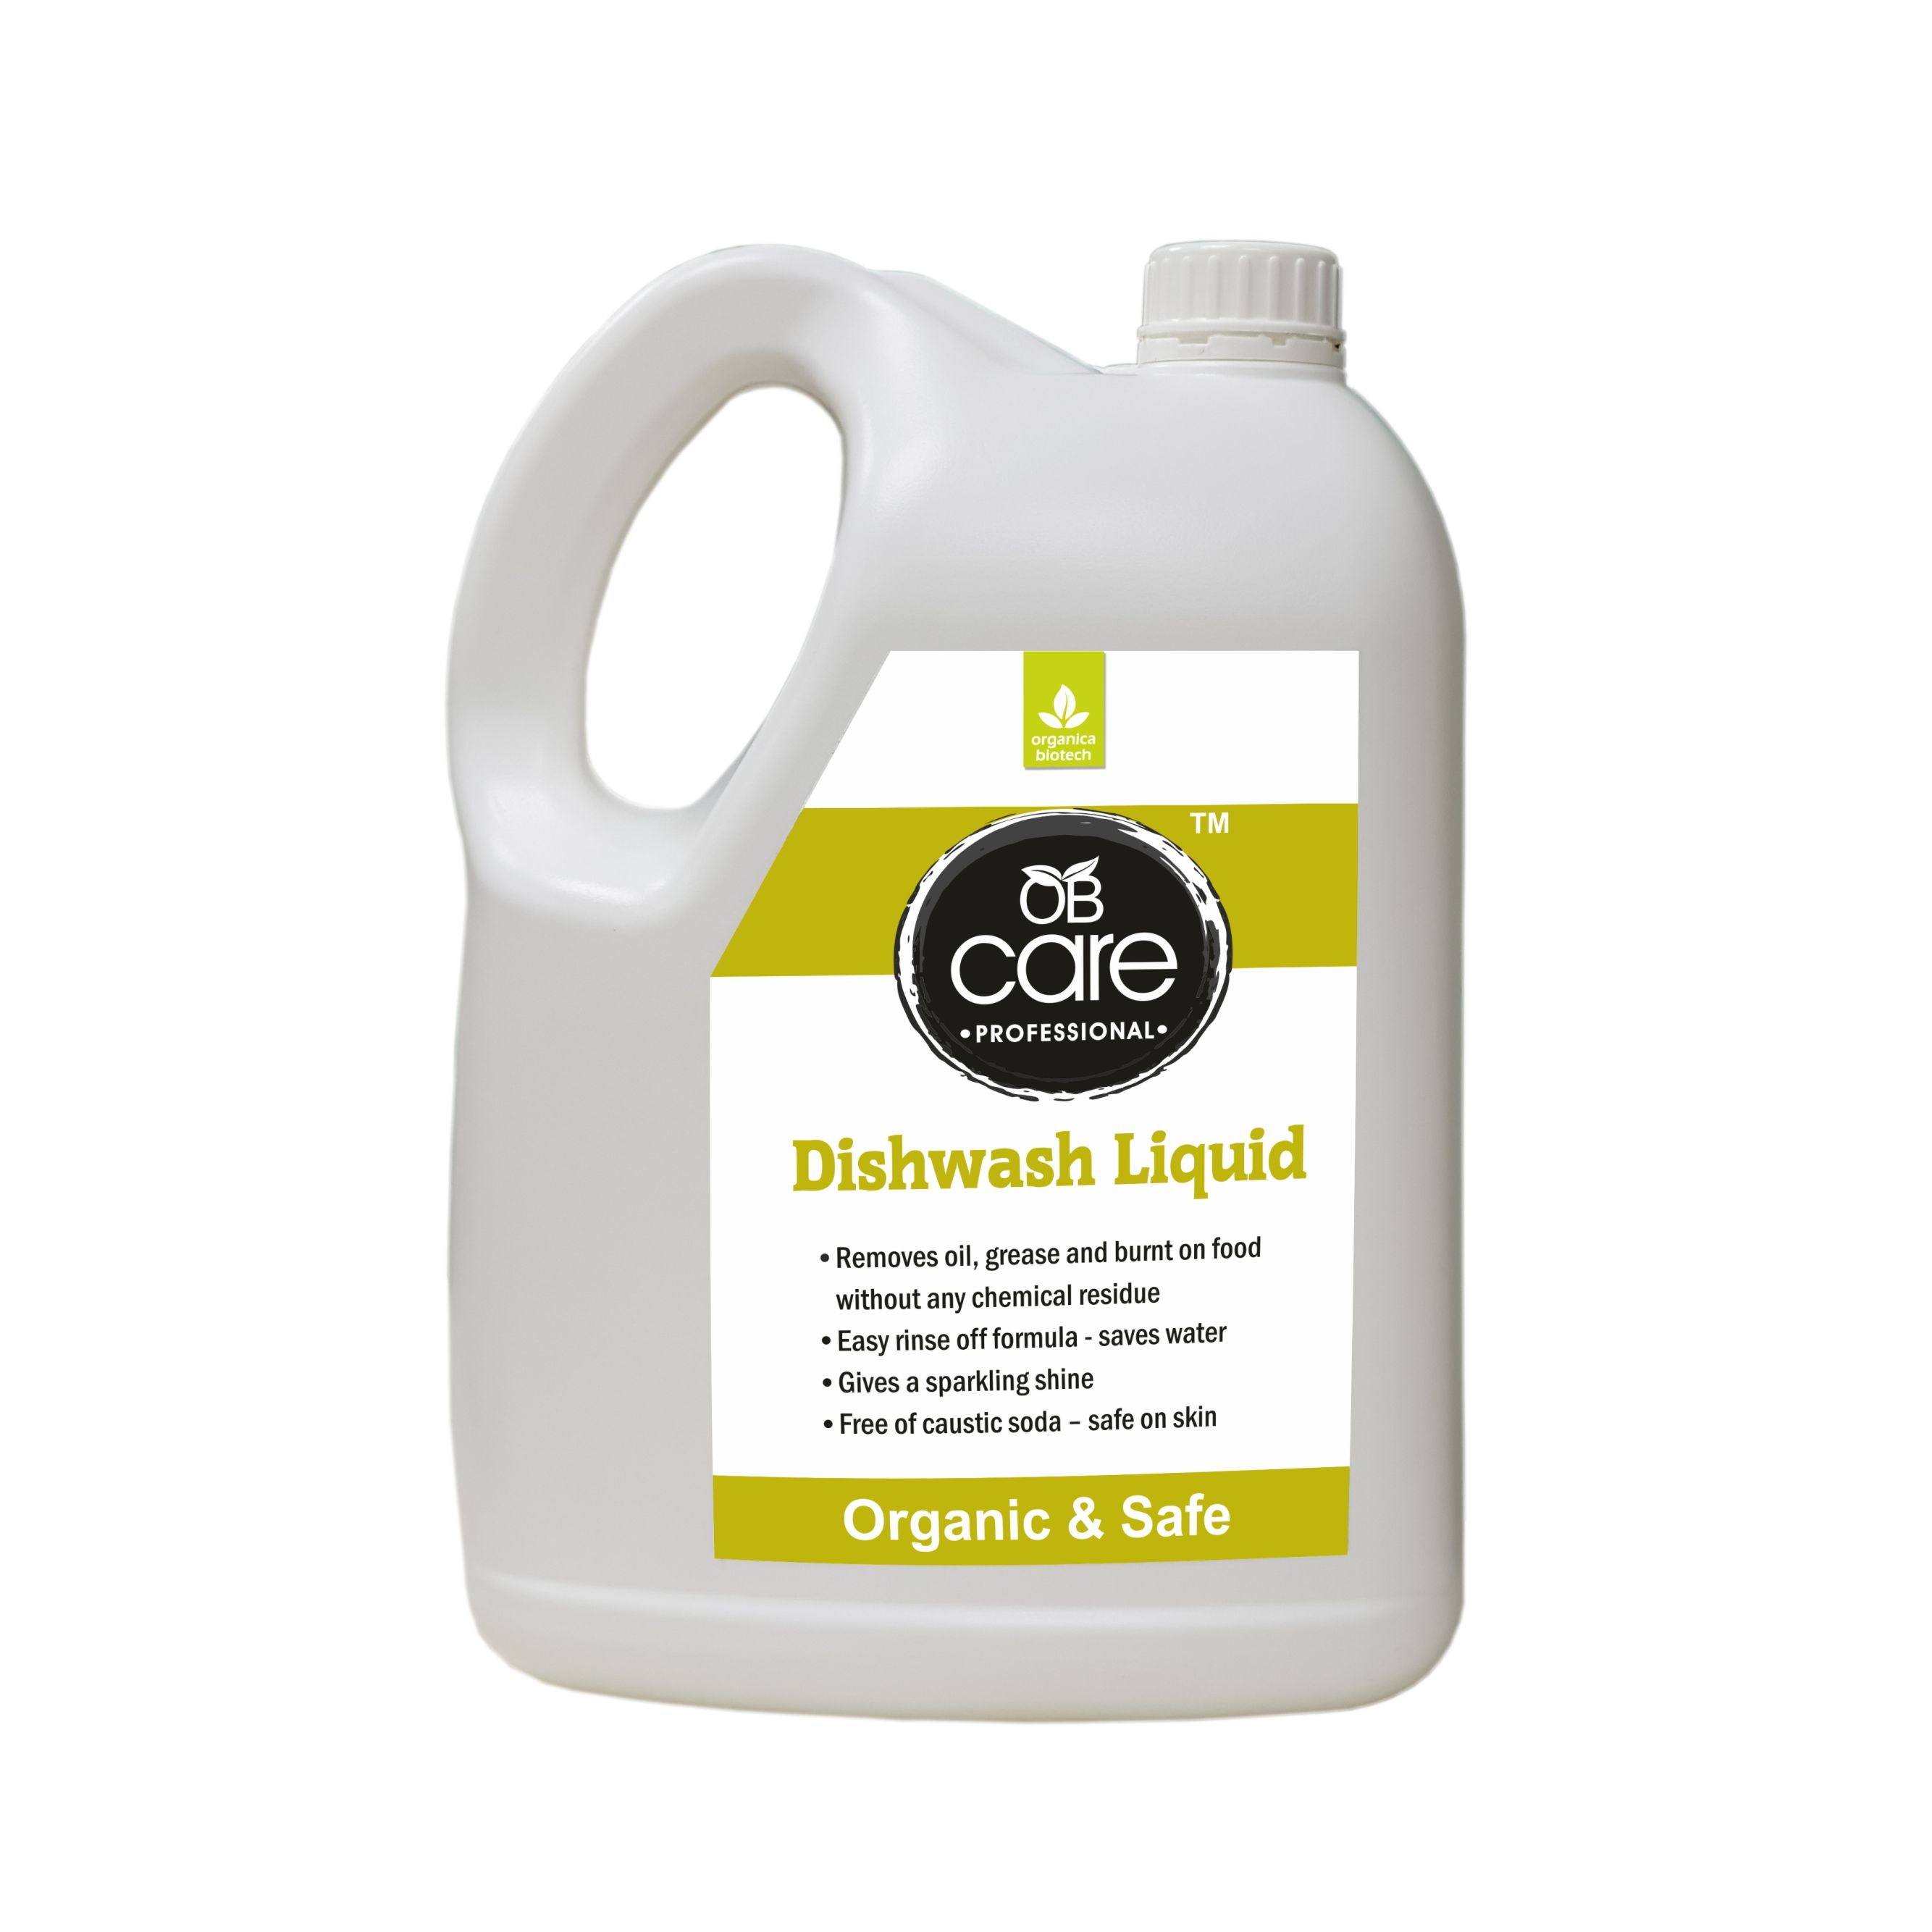 Natural dishwash cleaning liquid for plates and kitchen utensils